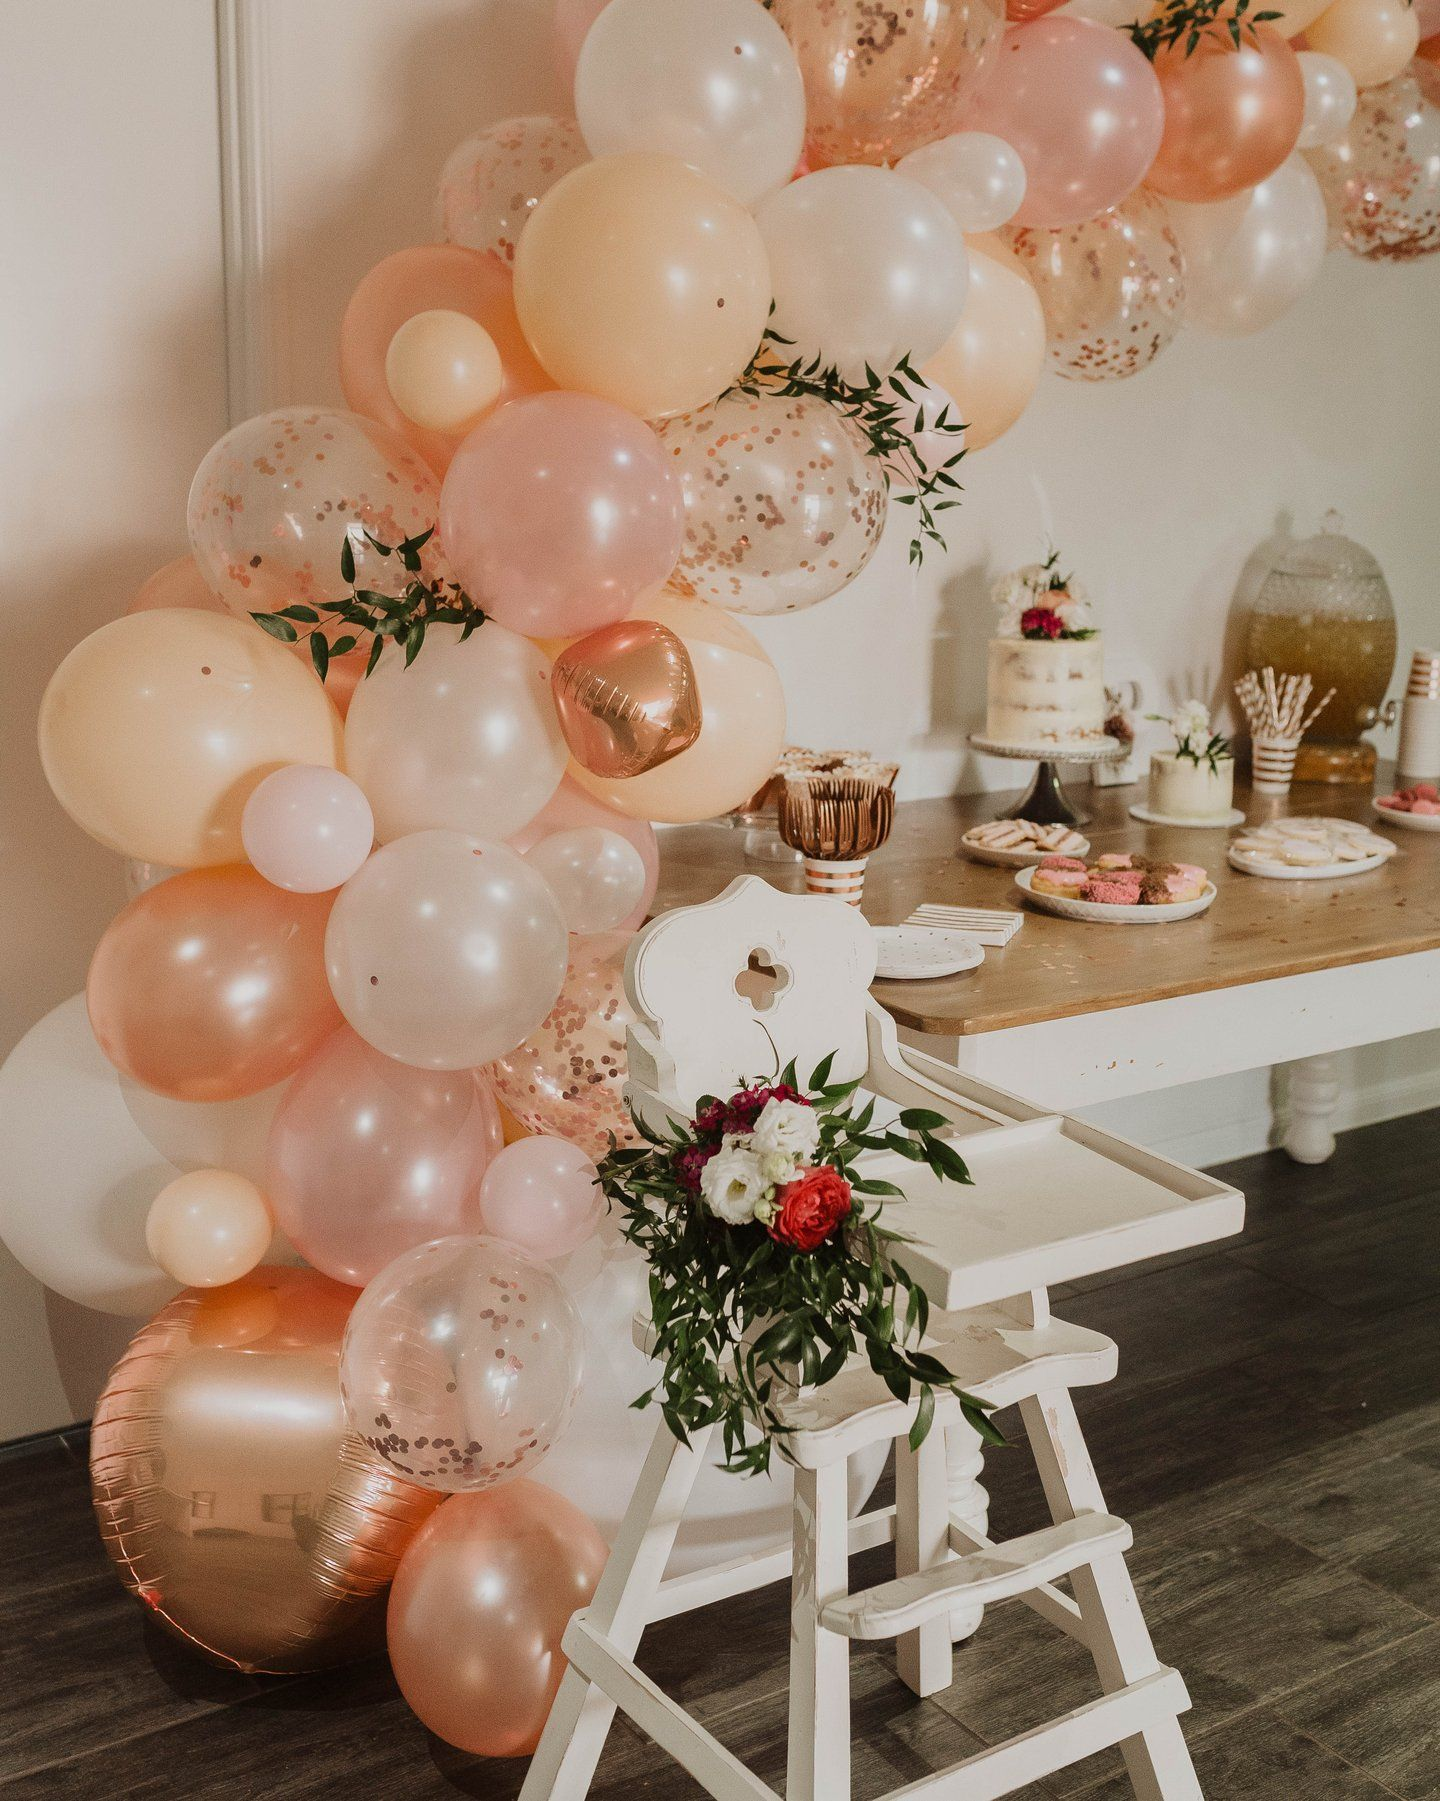 Our DIY balloon garland kits include everything you need